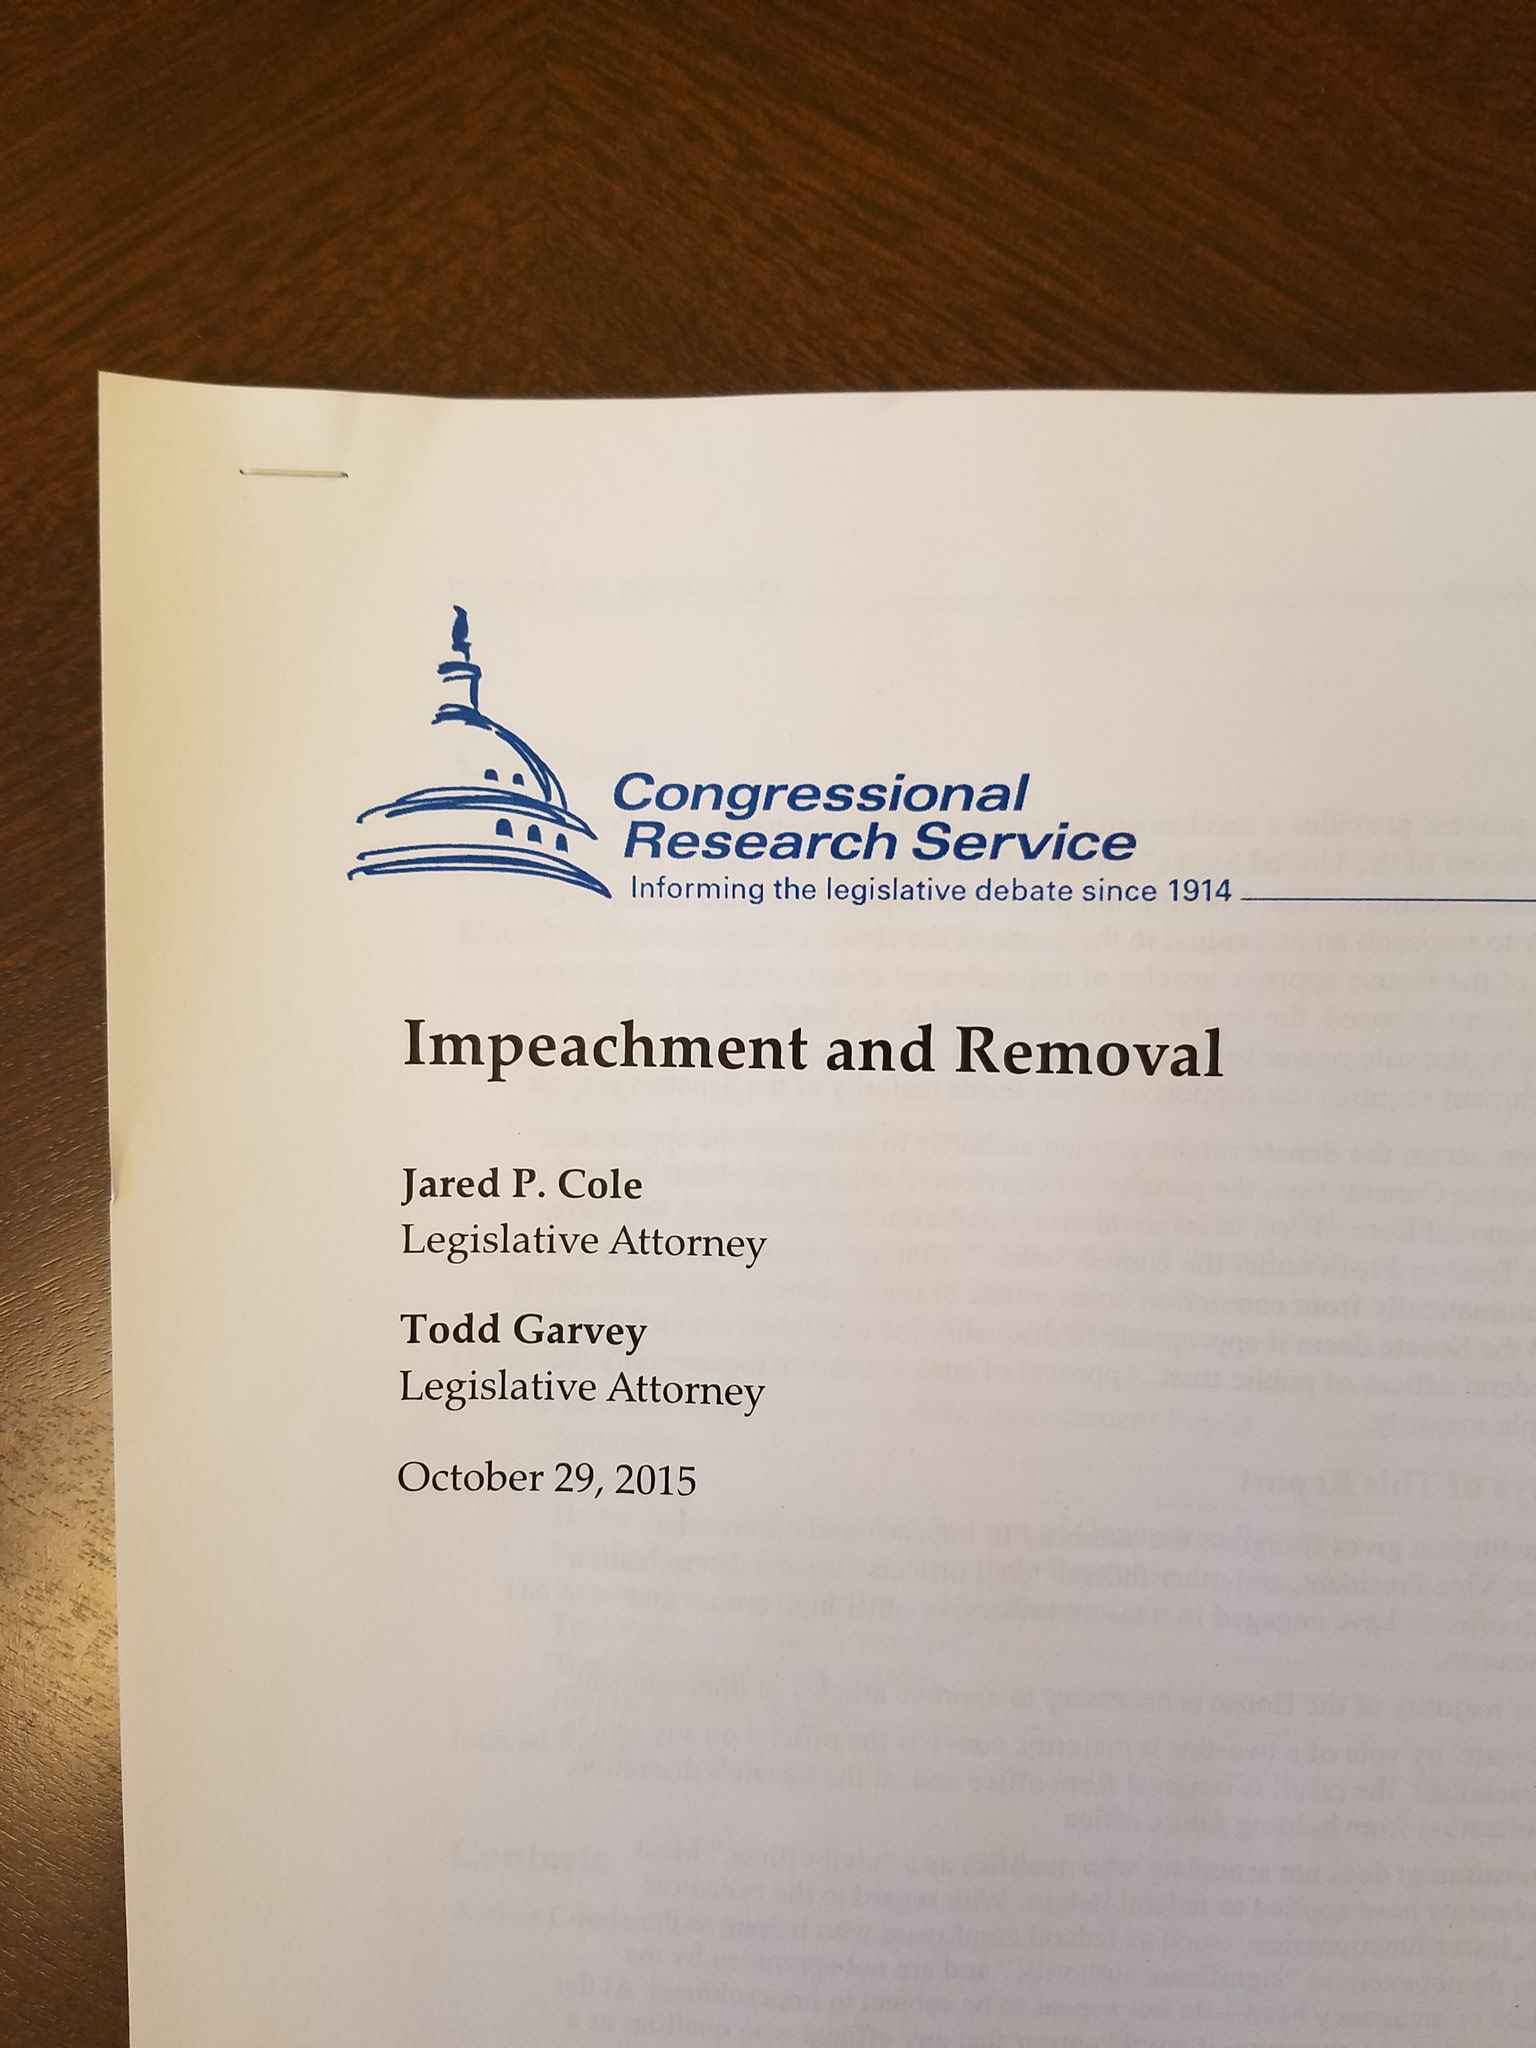 RT @tedlieu: I am on the House Judiciary Committee. This is what I am going to read this evening. https://t.co/k7GKneMcFx